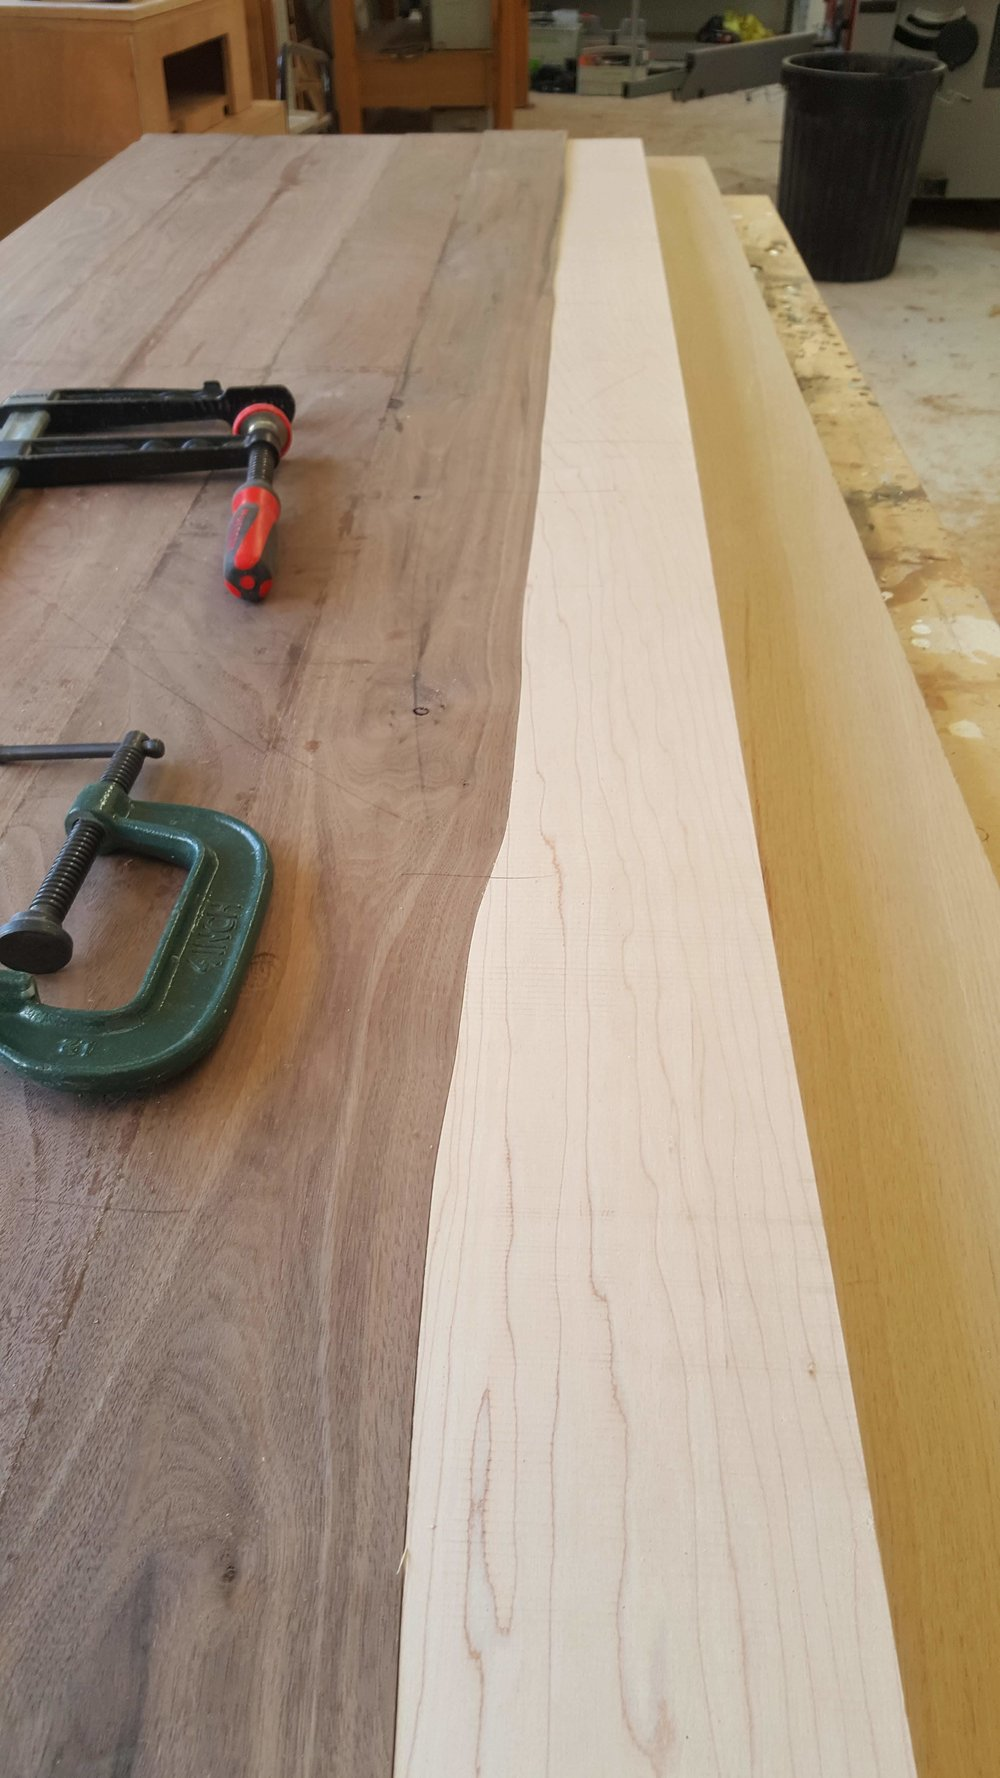 Heliconia_Furniturte_WalnutMaple_DiningTable_waveTemplating (5).jpg